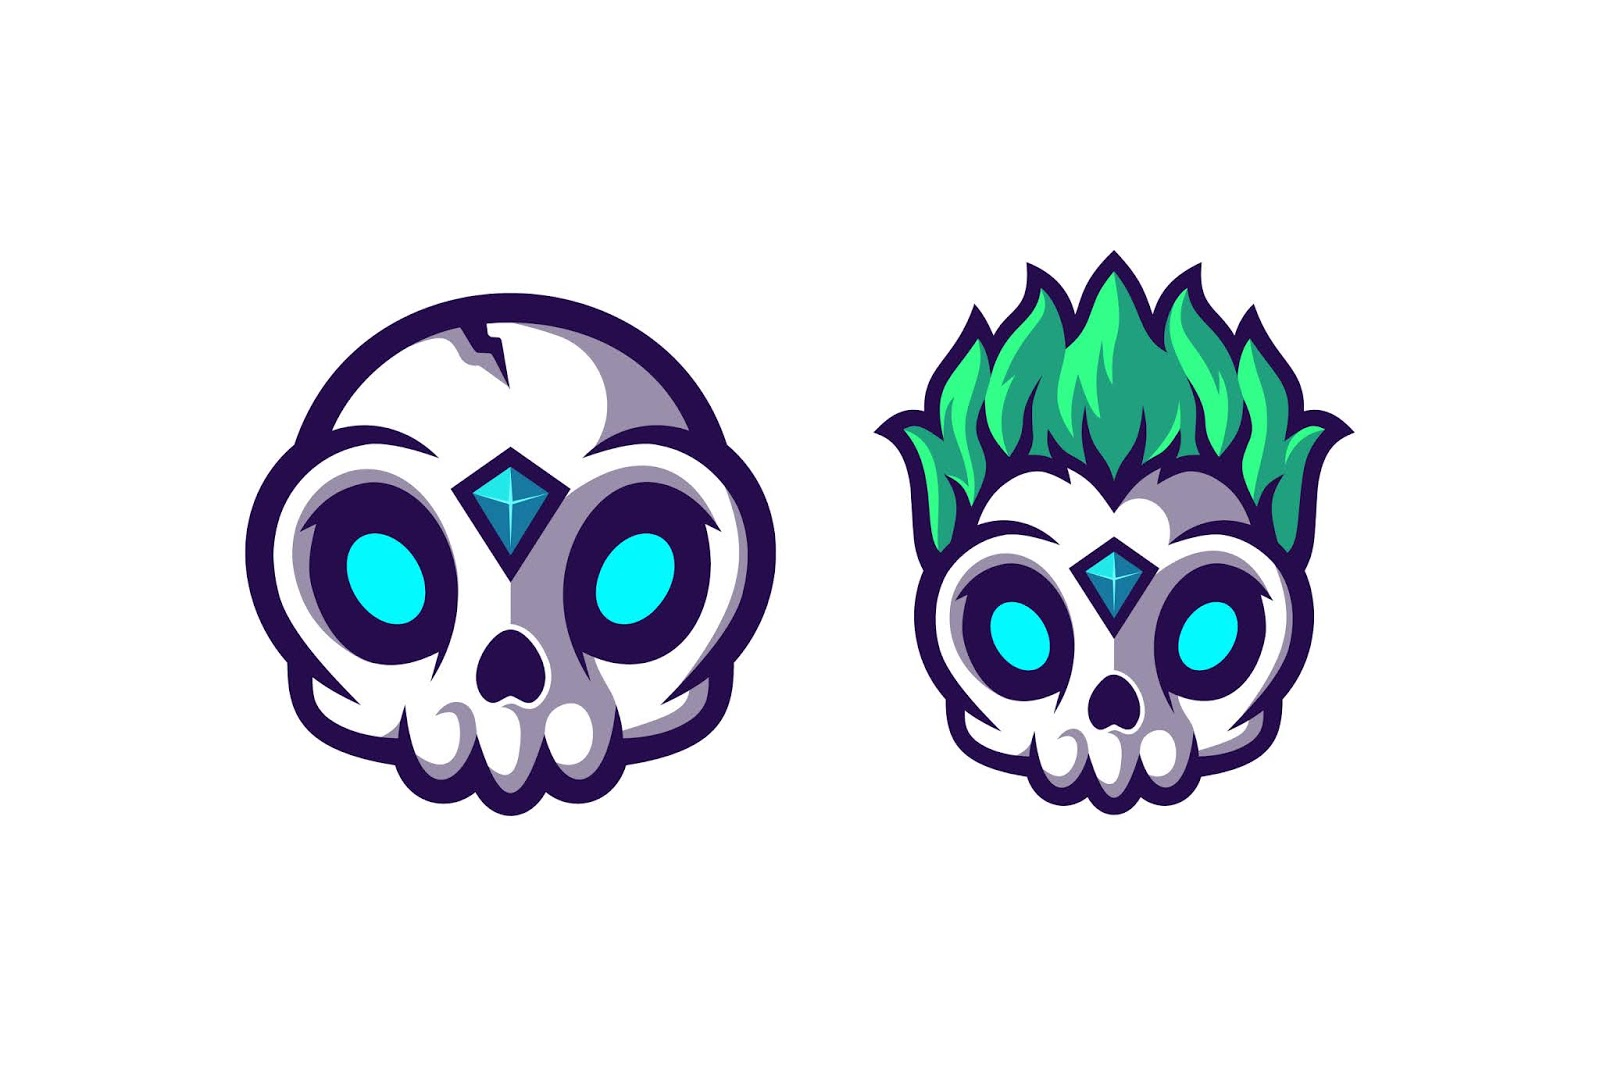 Awesome Cute Skull With Two Option Model Free Download Vector CDR, AI, EPS and PNG Formats